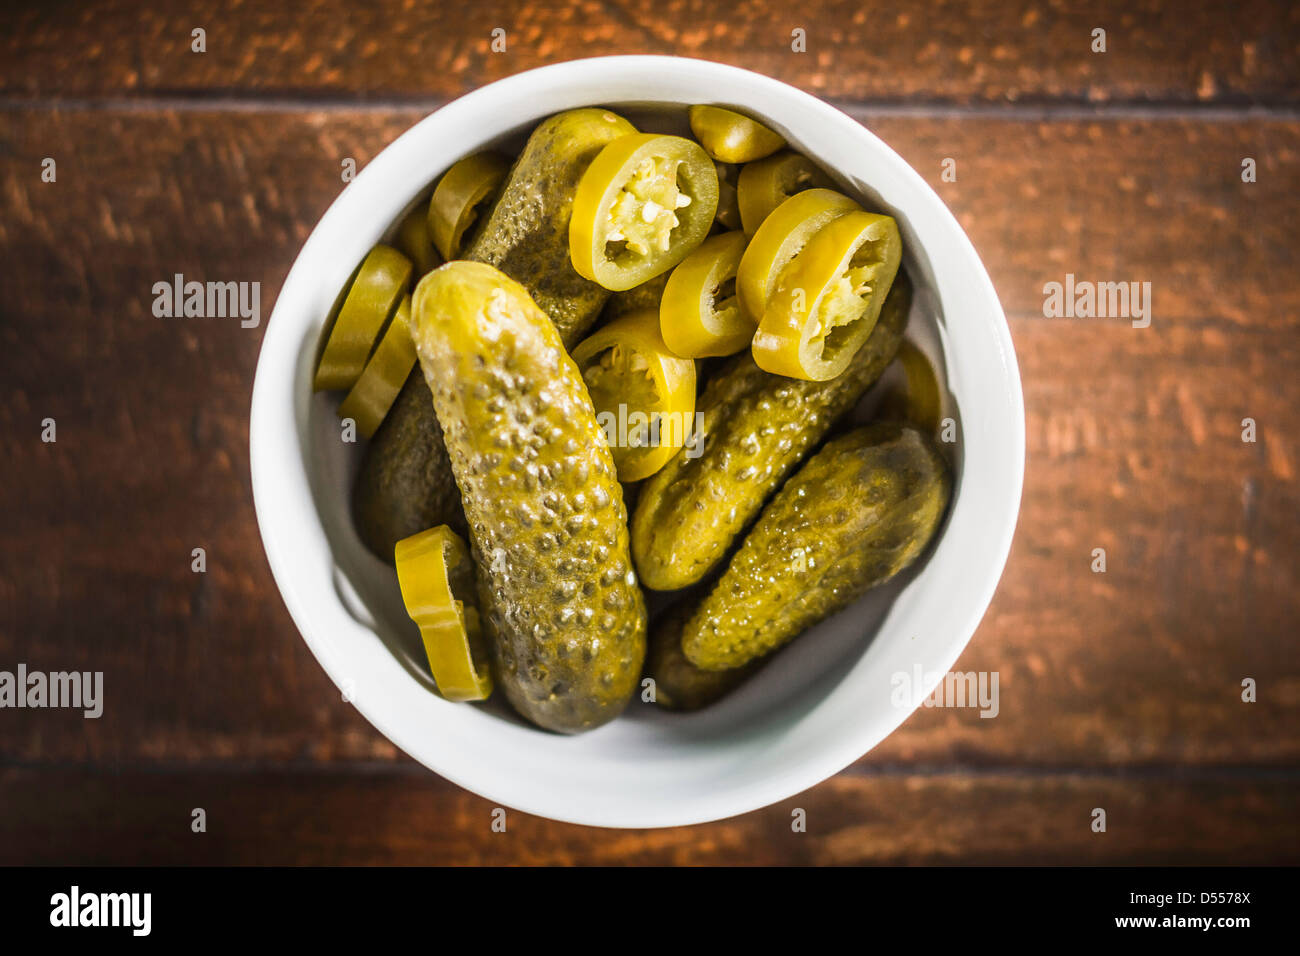 Bowl of pickles and chili pepper slices Stock Foto